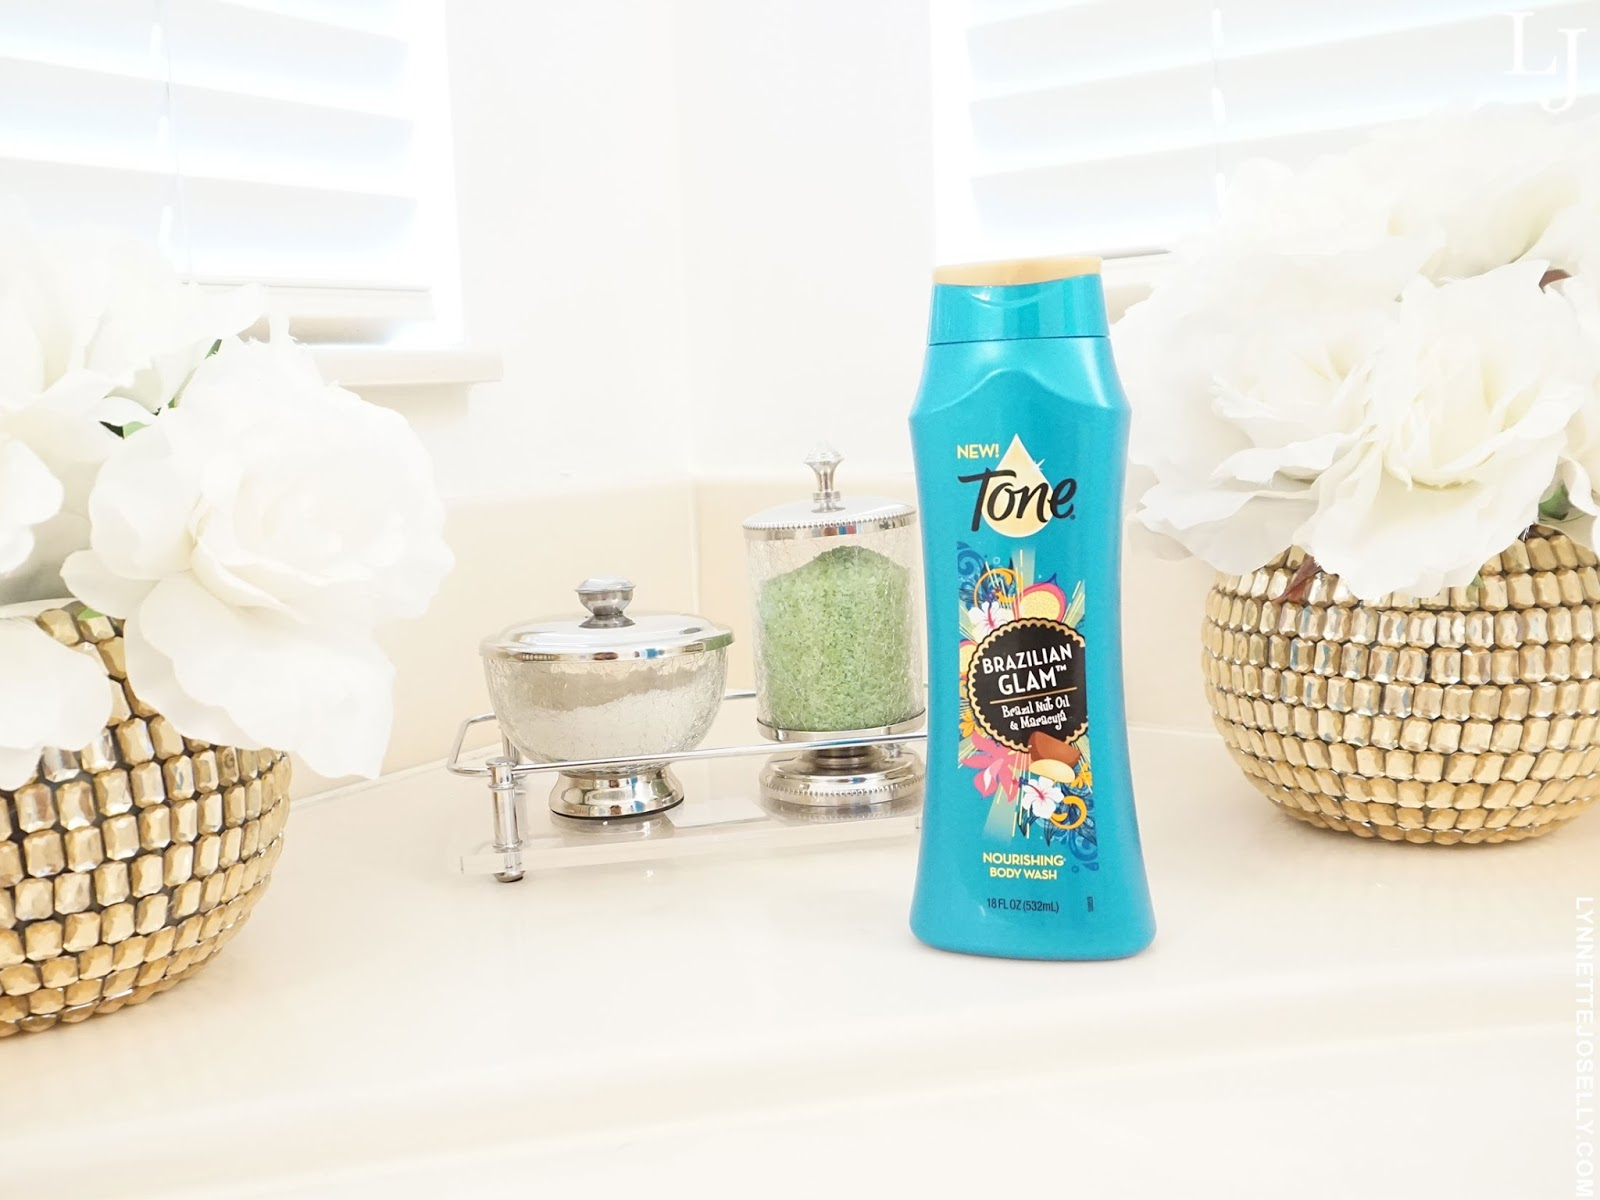 tone-body-wash-brazilian-glam